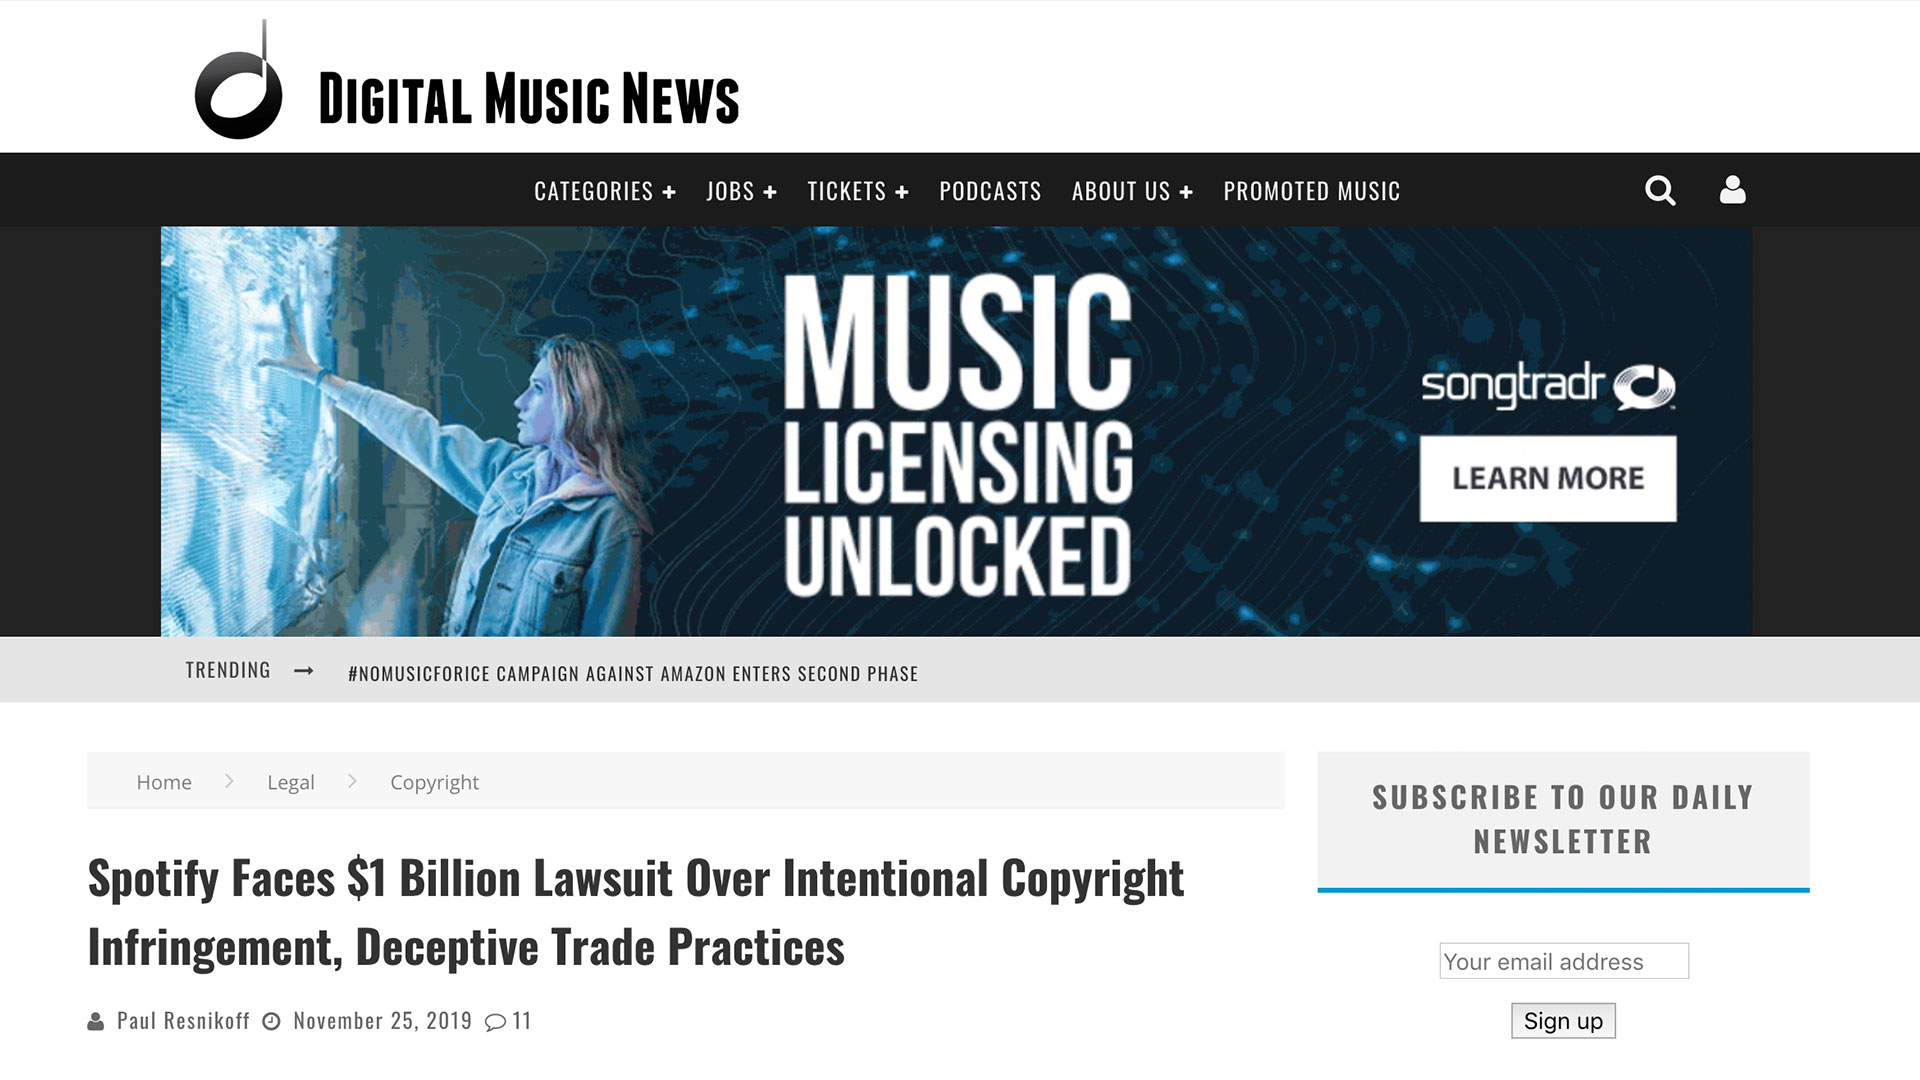 Fairness Rocks News Spotify Faces $1 Billion Lawsuit Over Intentional Copyright Infringement, Deceptive Trade Practices